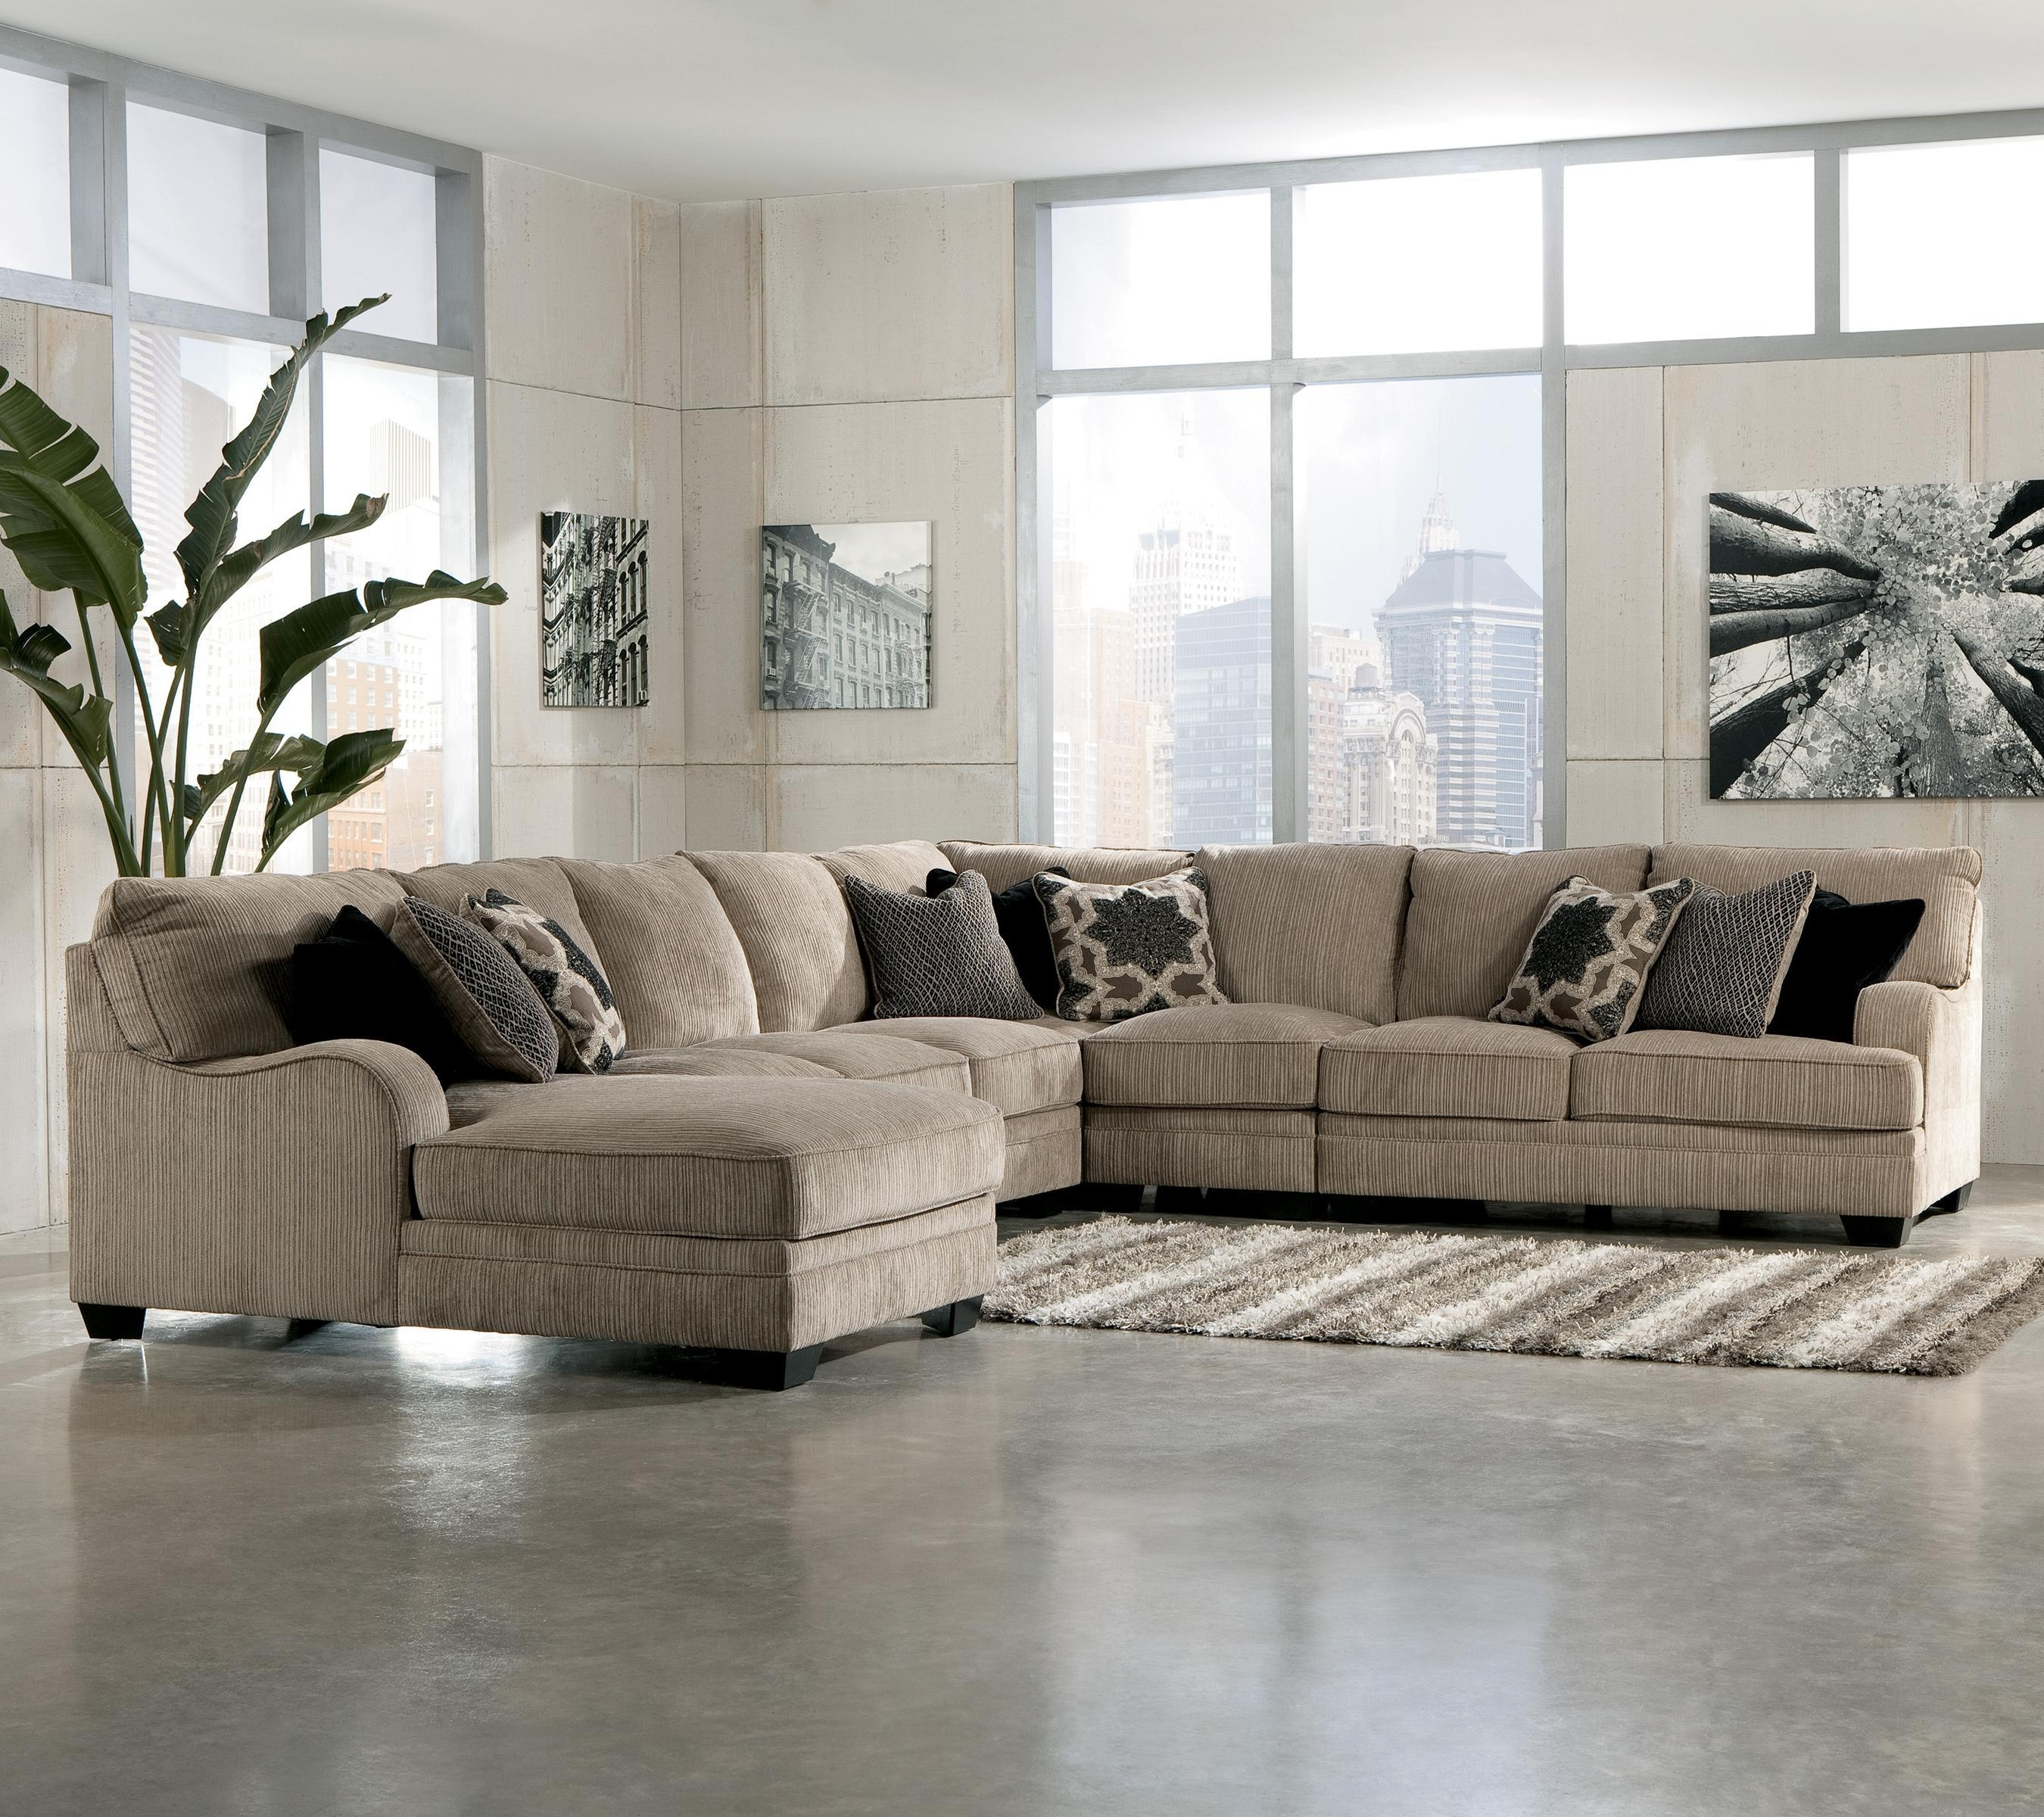 Sofas Center : Charming Oversized Sectional Sofa With Chaise About Inside Sectional Sofas Portland (Image 12 of 20)